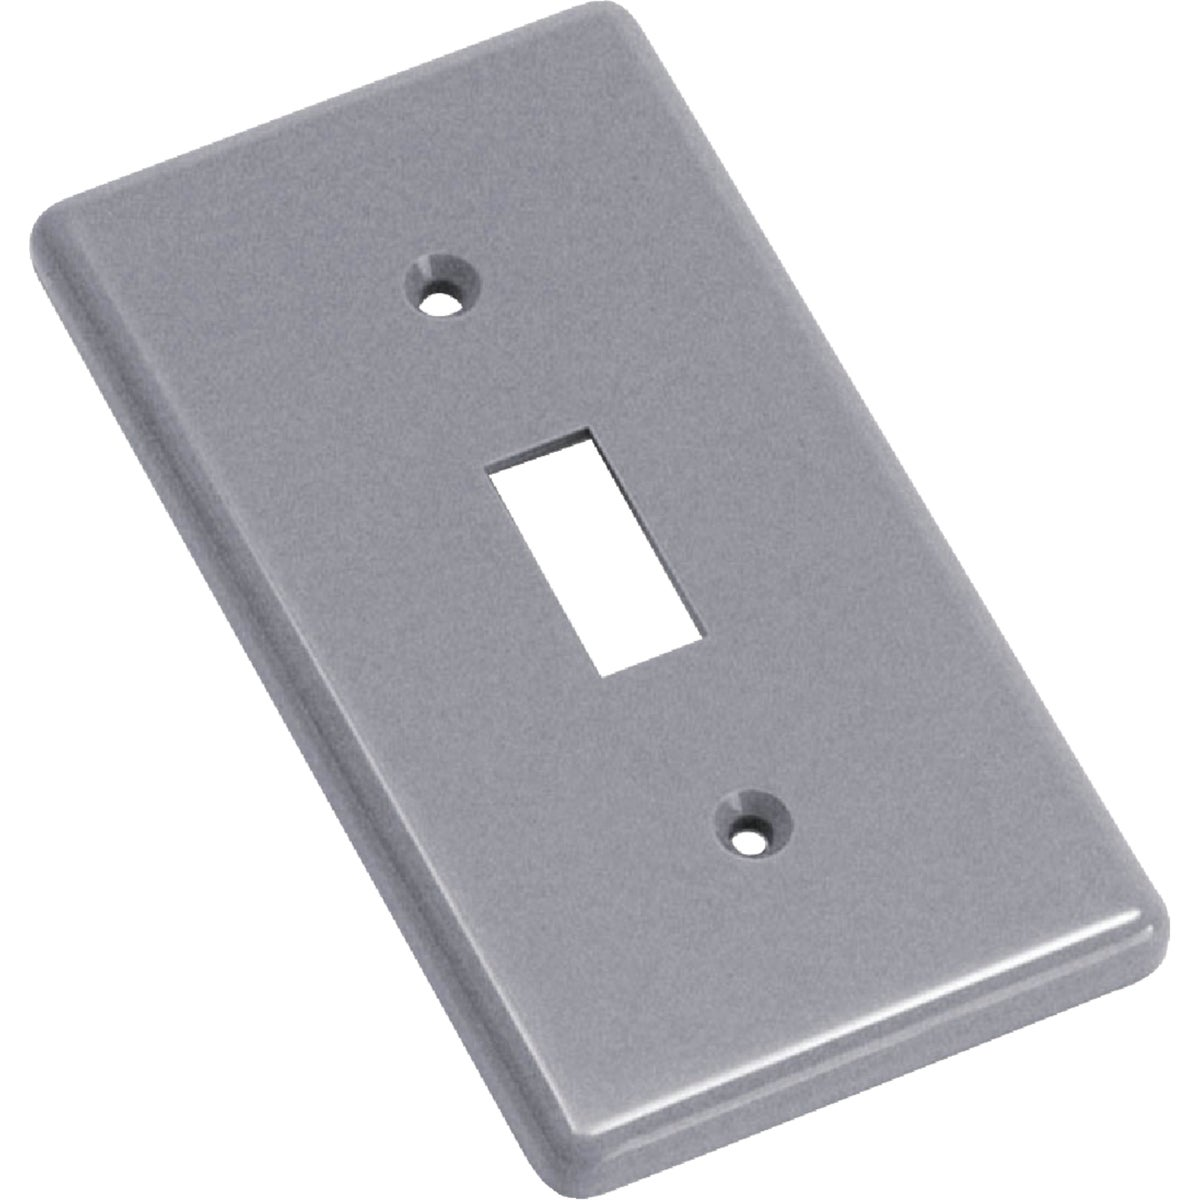 HANDY BOX SWITCH COVER - HB1SW by Thomas & Betts